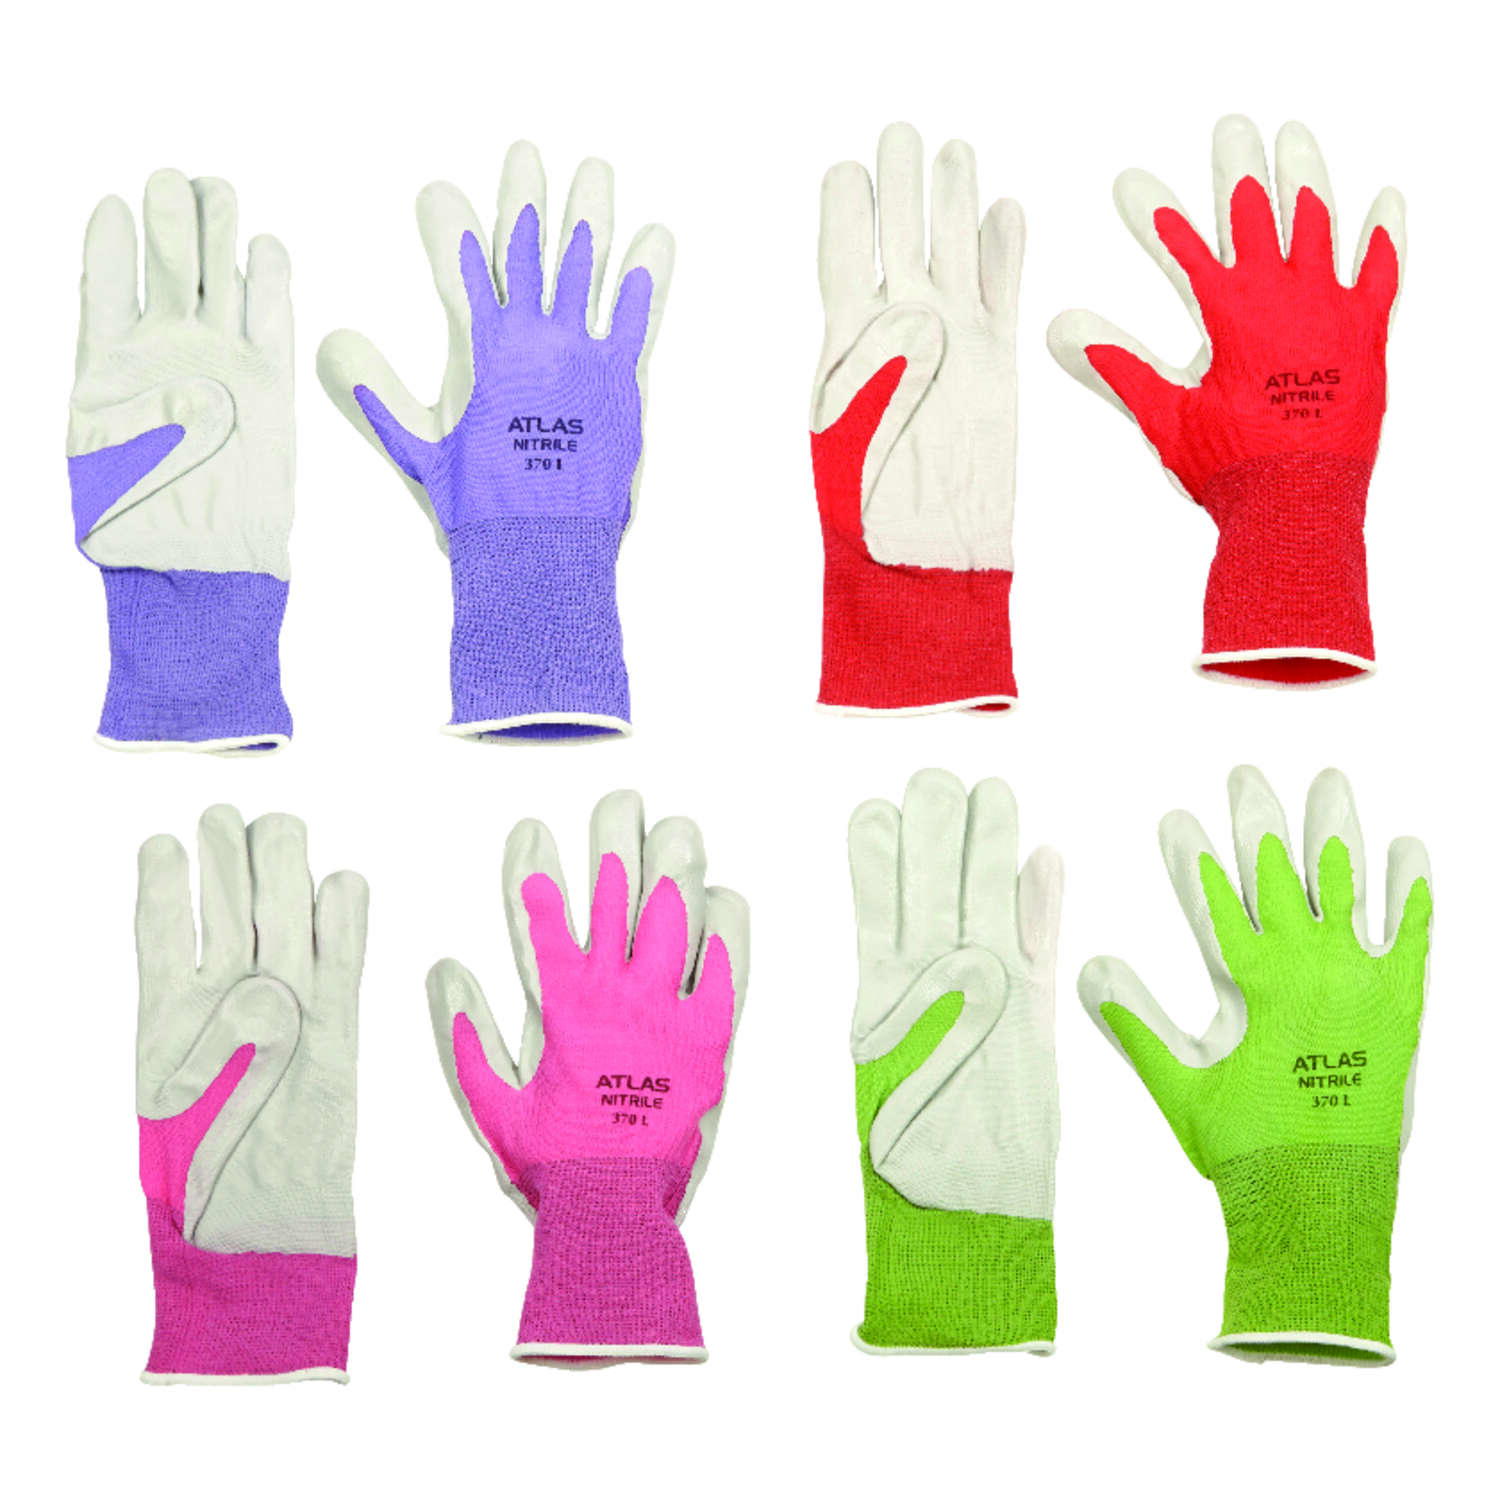 Atlas Unisex Indoor/Outdoor Nitrile Coated Gloves Assorted S 1 pair